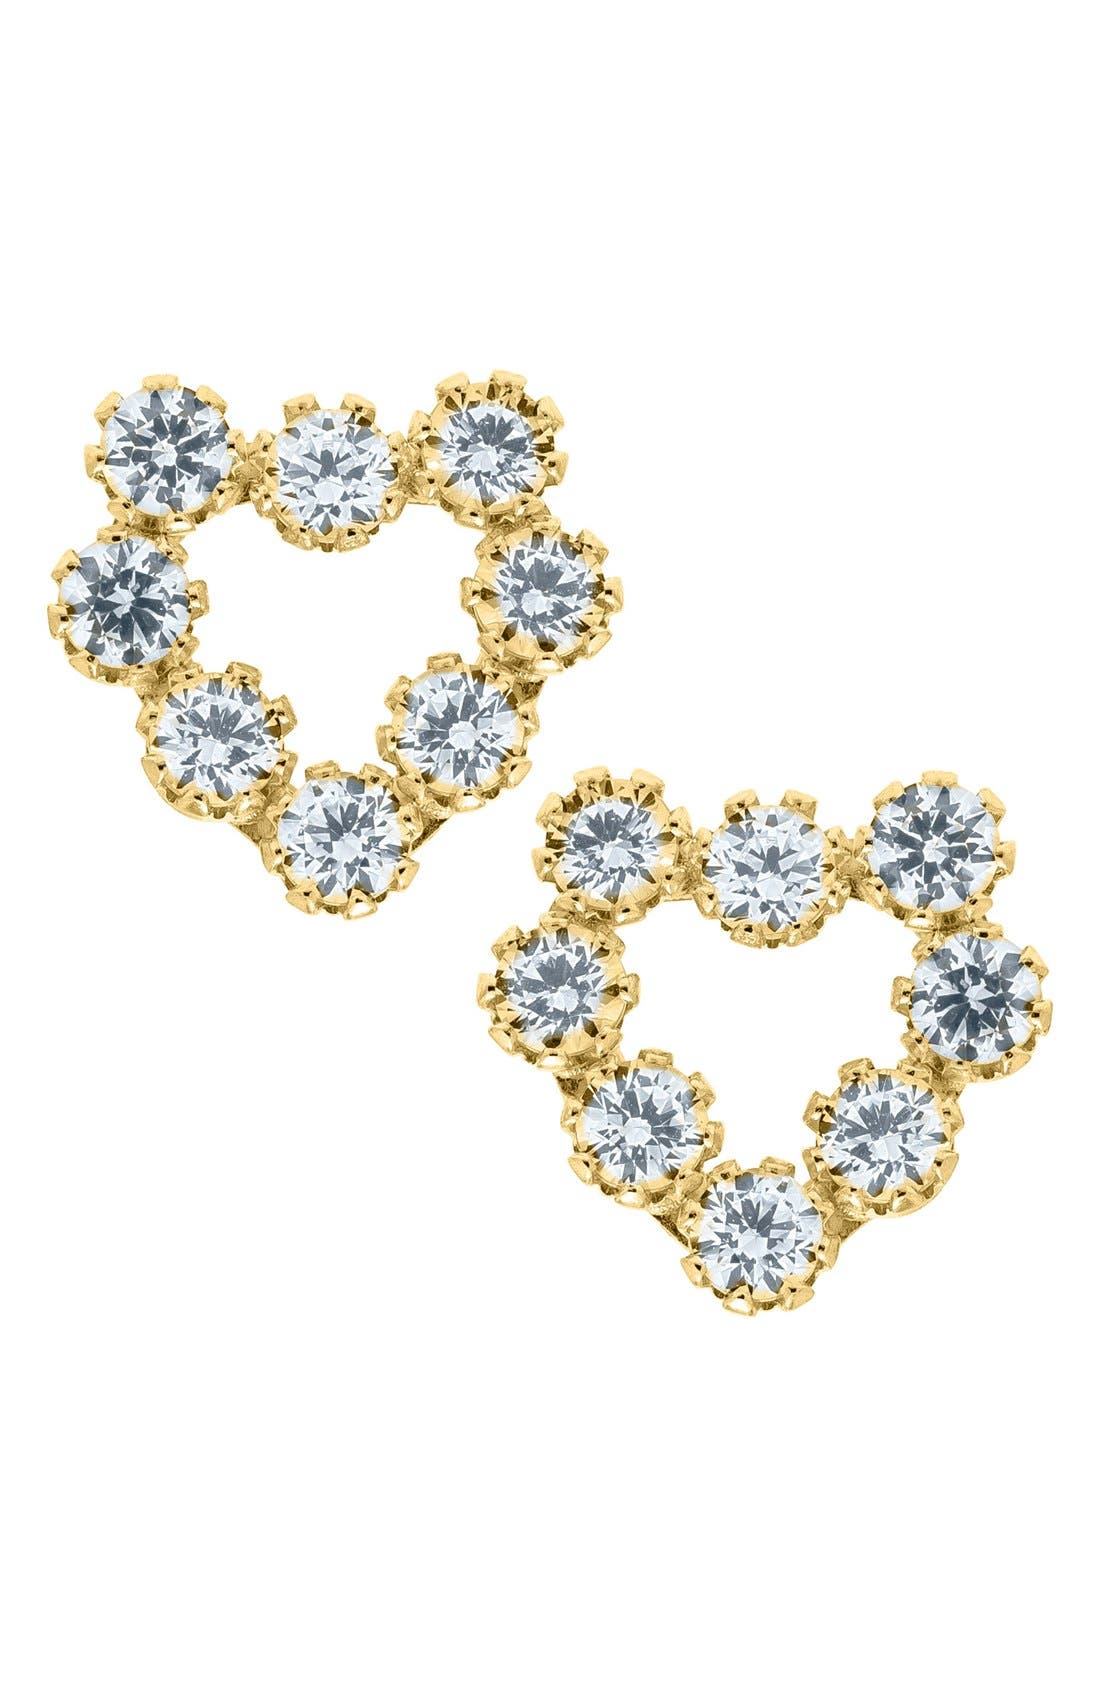 Main Image - Mignonette 14k Gold & Cubic Zirconia Heart Earrings (Baby Girls)